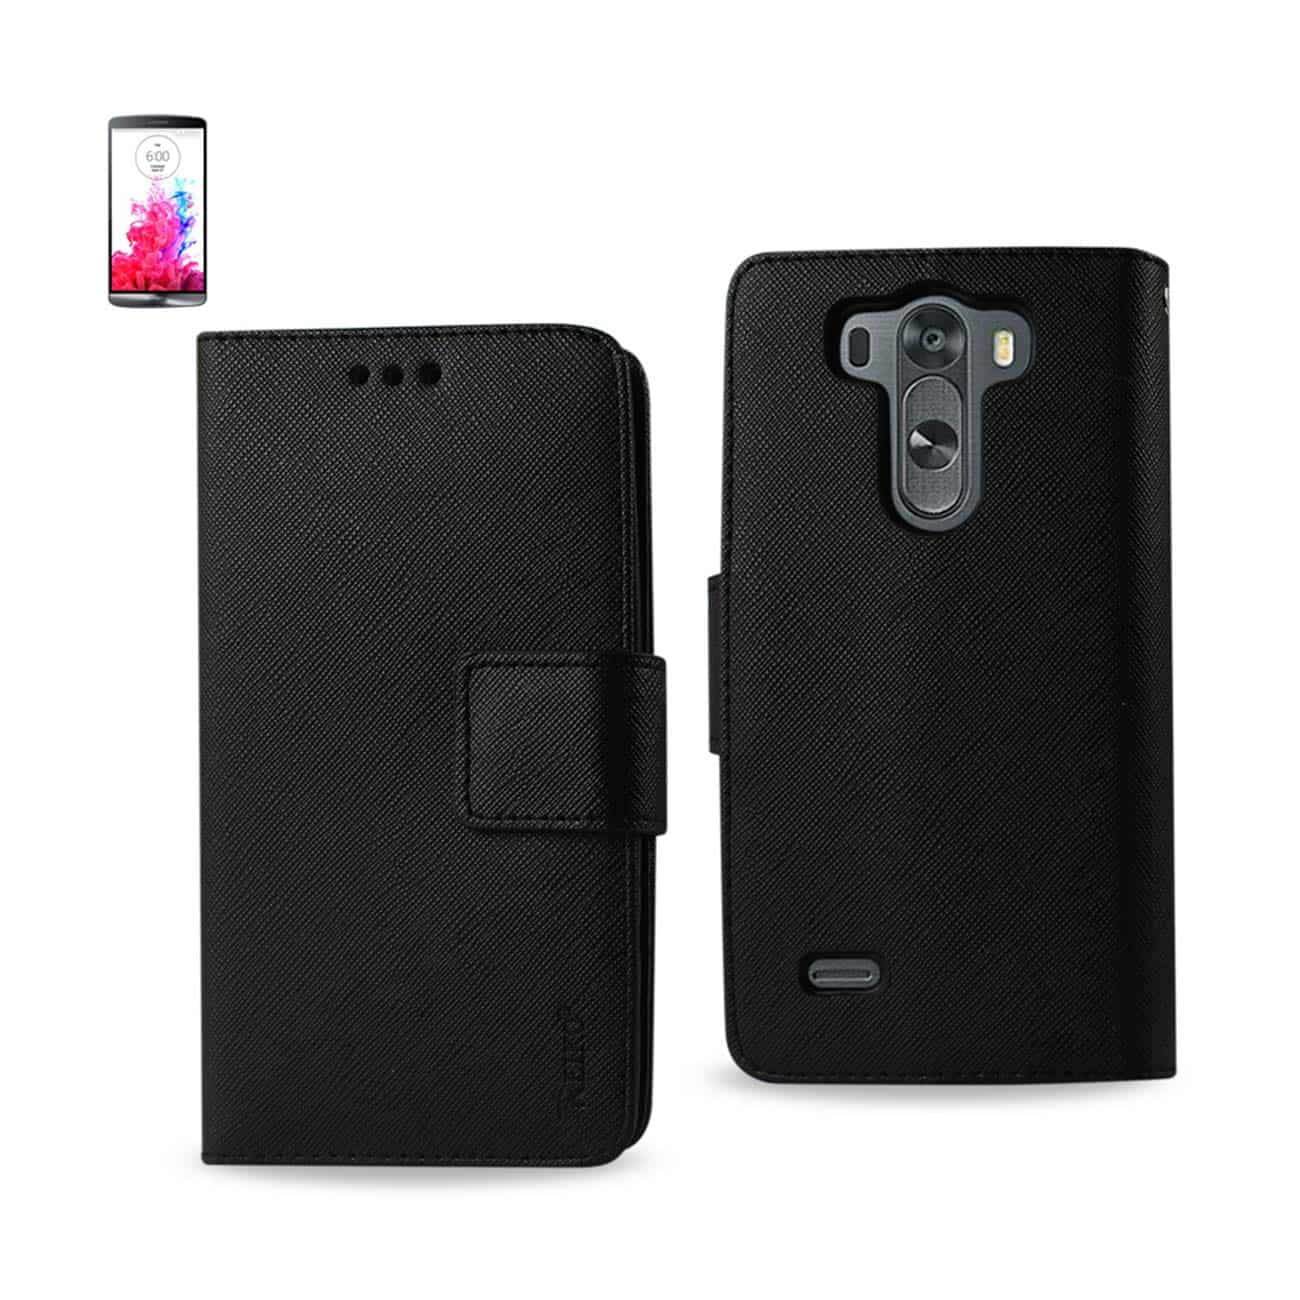 LG G3 MINI 3-IN-1 WALLET CASE IN BLACK